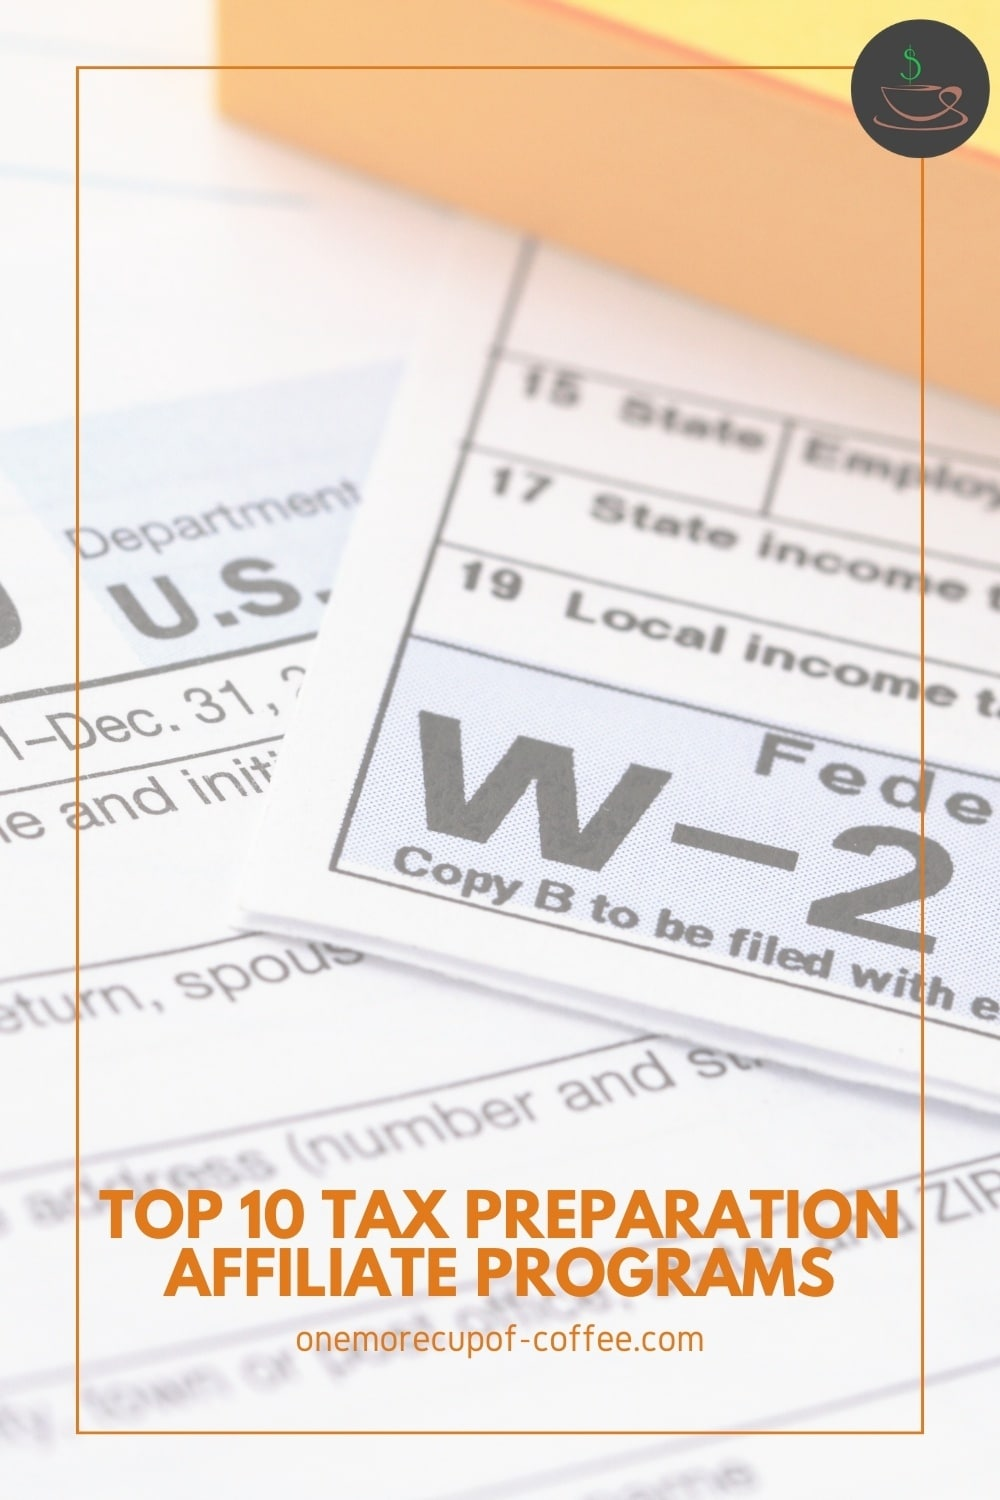 """tax forms with text overlay """"Top 10 Tax Preparation Affiliate Programs"""""""